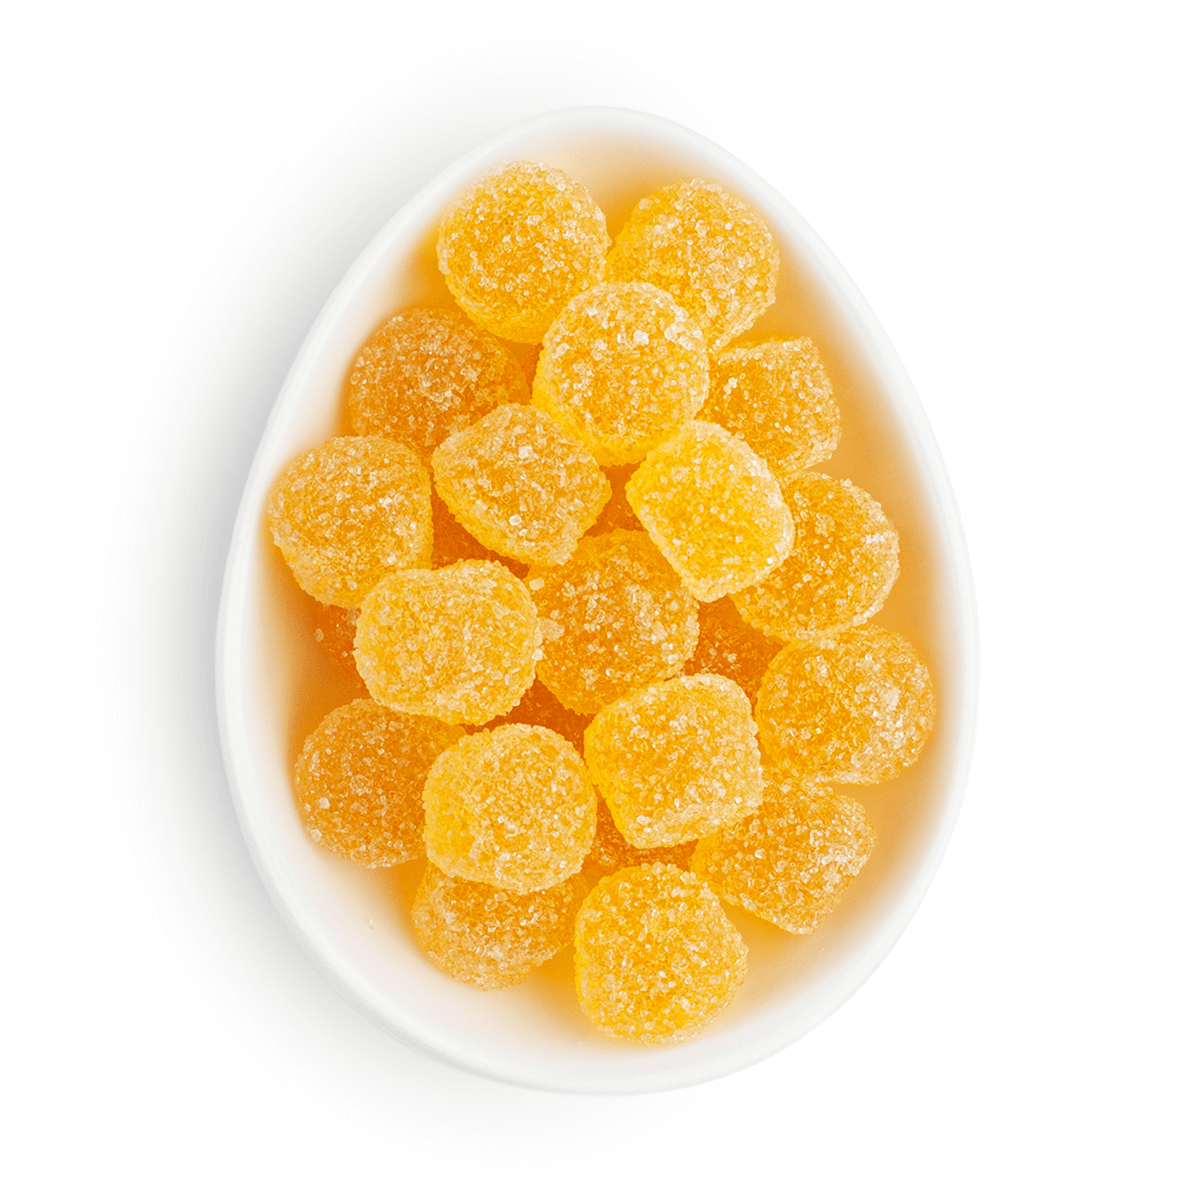 Italian Lemon Fruttini